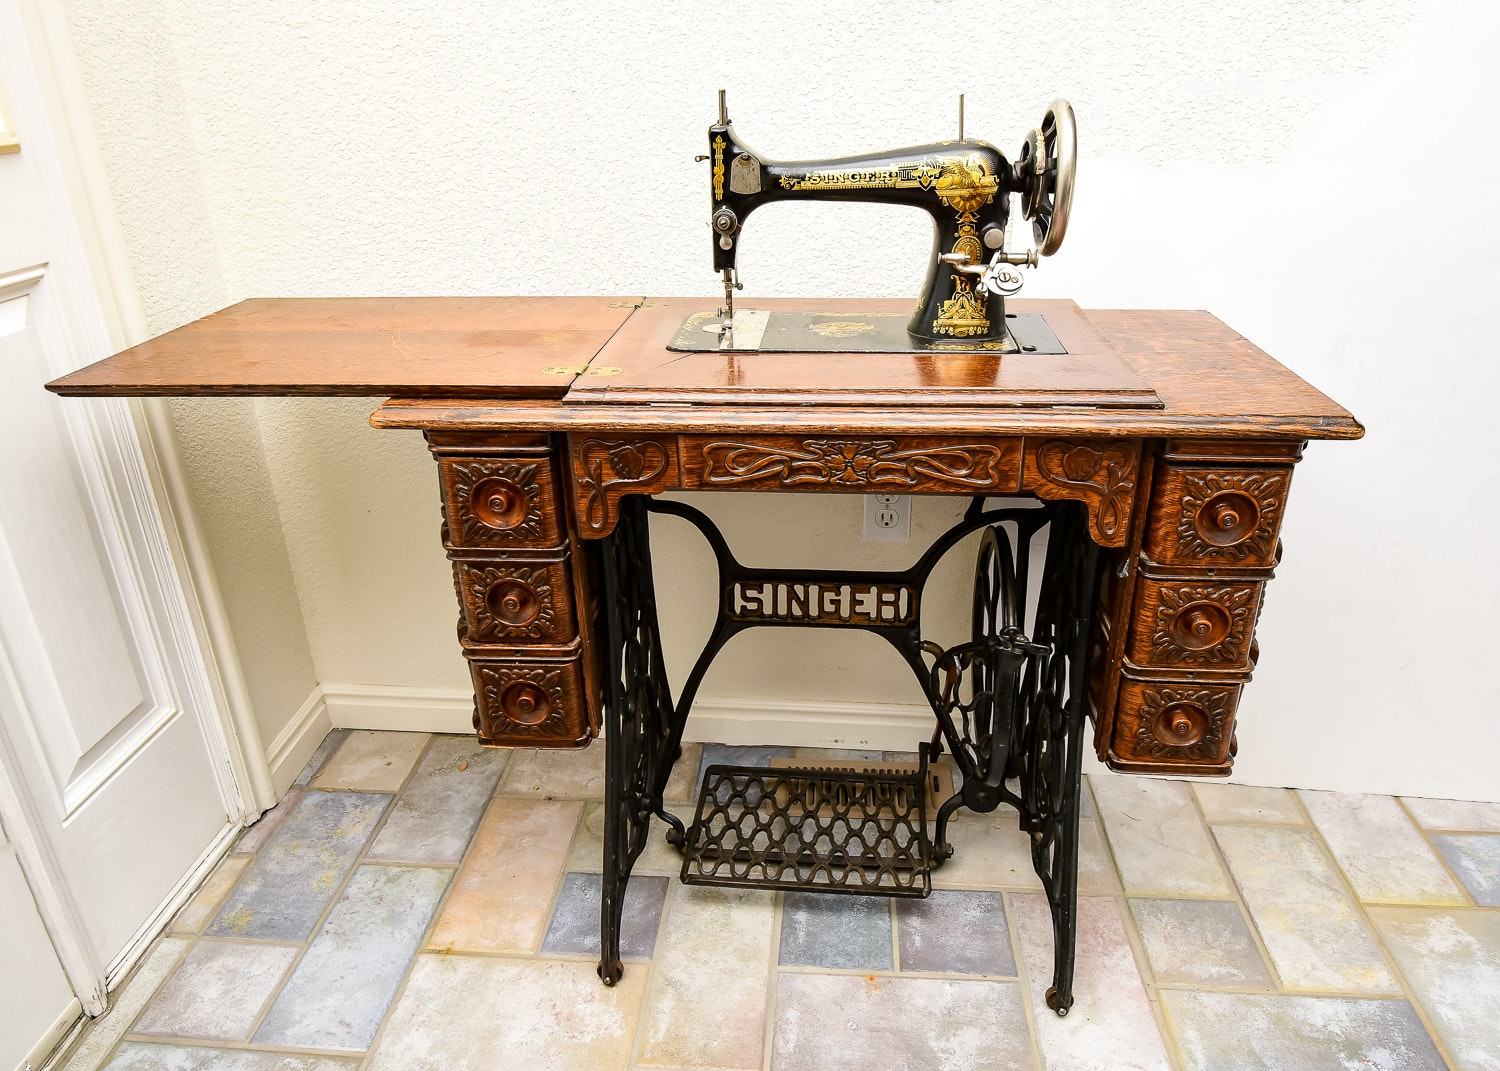 Ornate Antique Singer Sewing Machine and Table